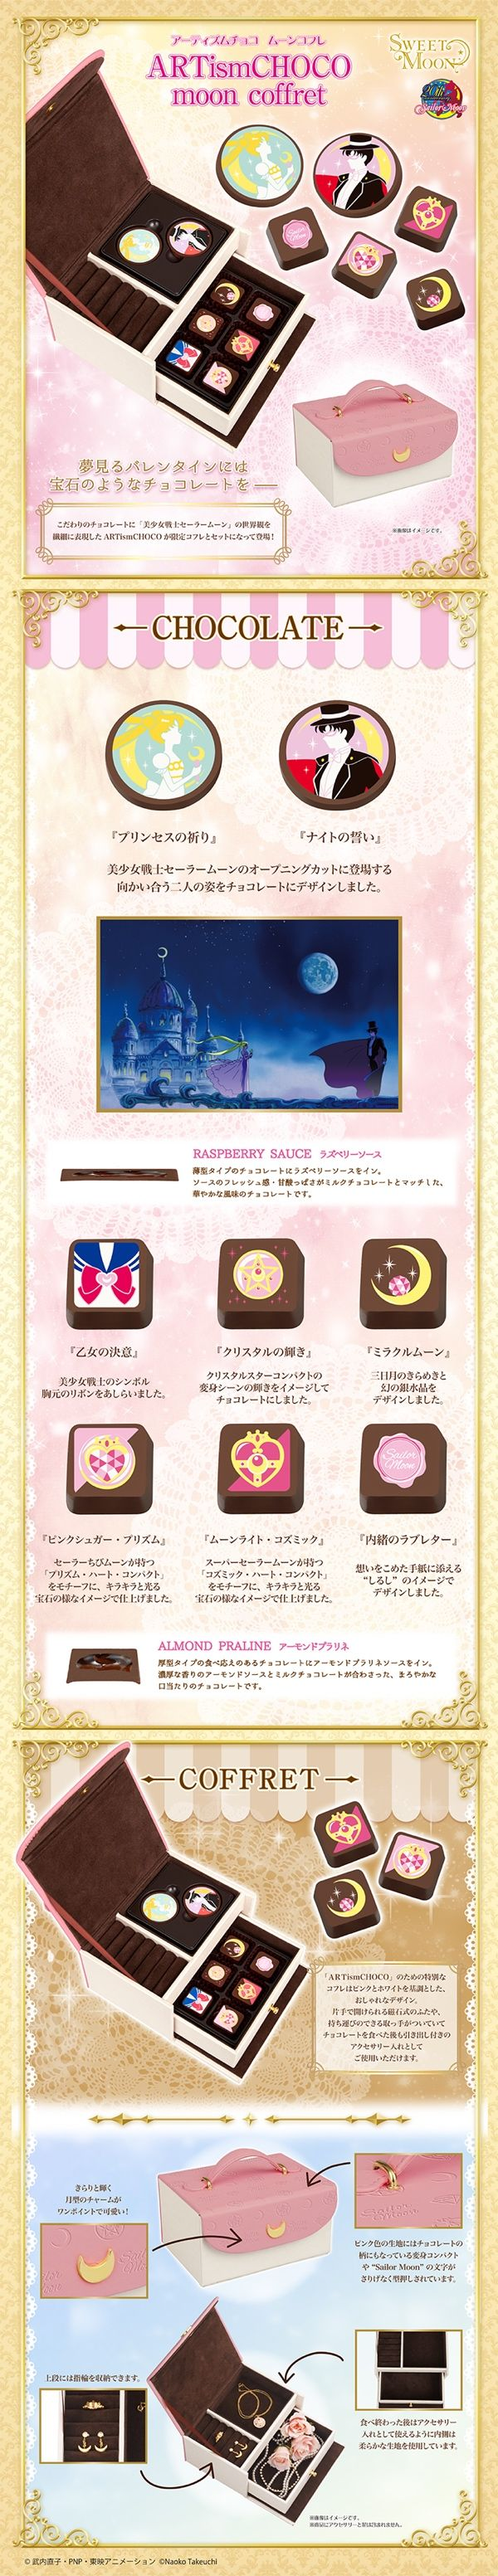 Sailor Moon News: Sucre Caratere SWEET MOON Sailor Moon Candy MAKEUP MIX and ARTismCHOCO Moon Coffret (Premium Bandai Limited) - A Rinkya Blog